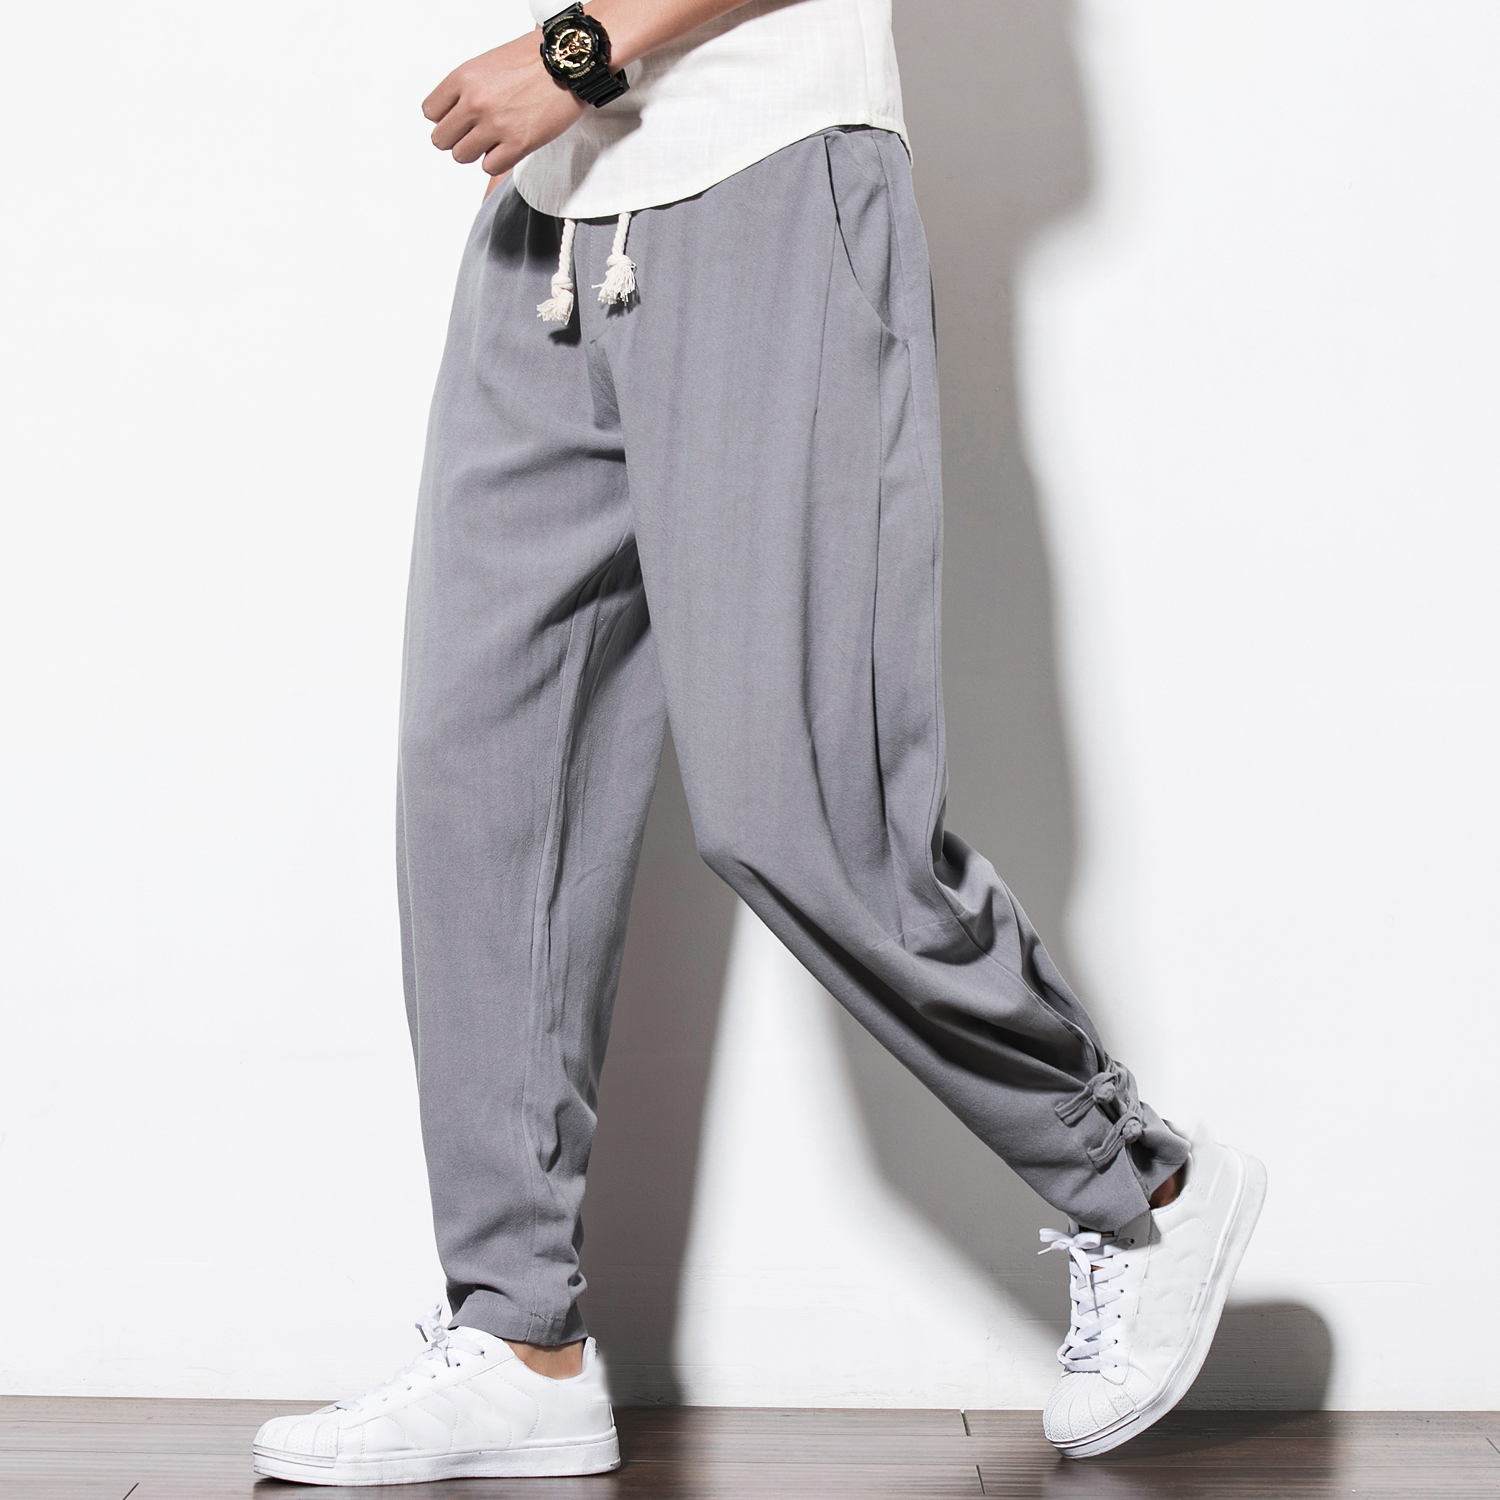 Frieed Mens Striped Buttons Drawstring Jogger Pants Workout Casual Slim Fit Harem Pants